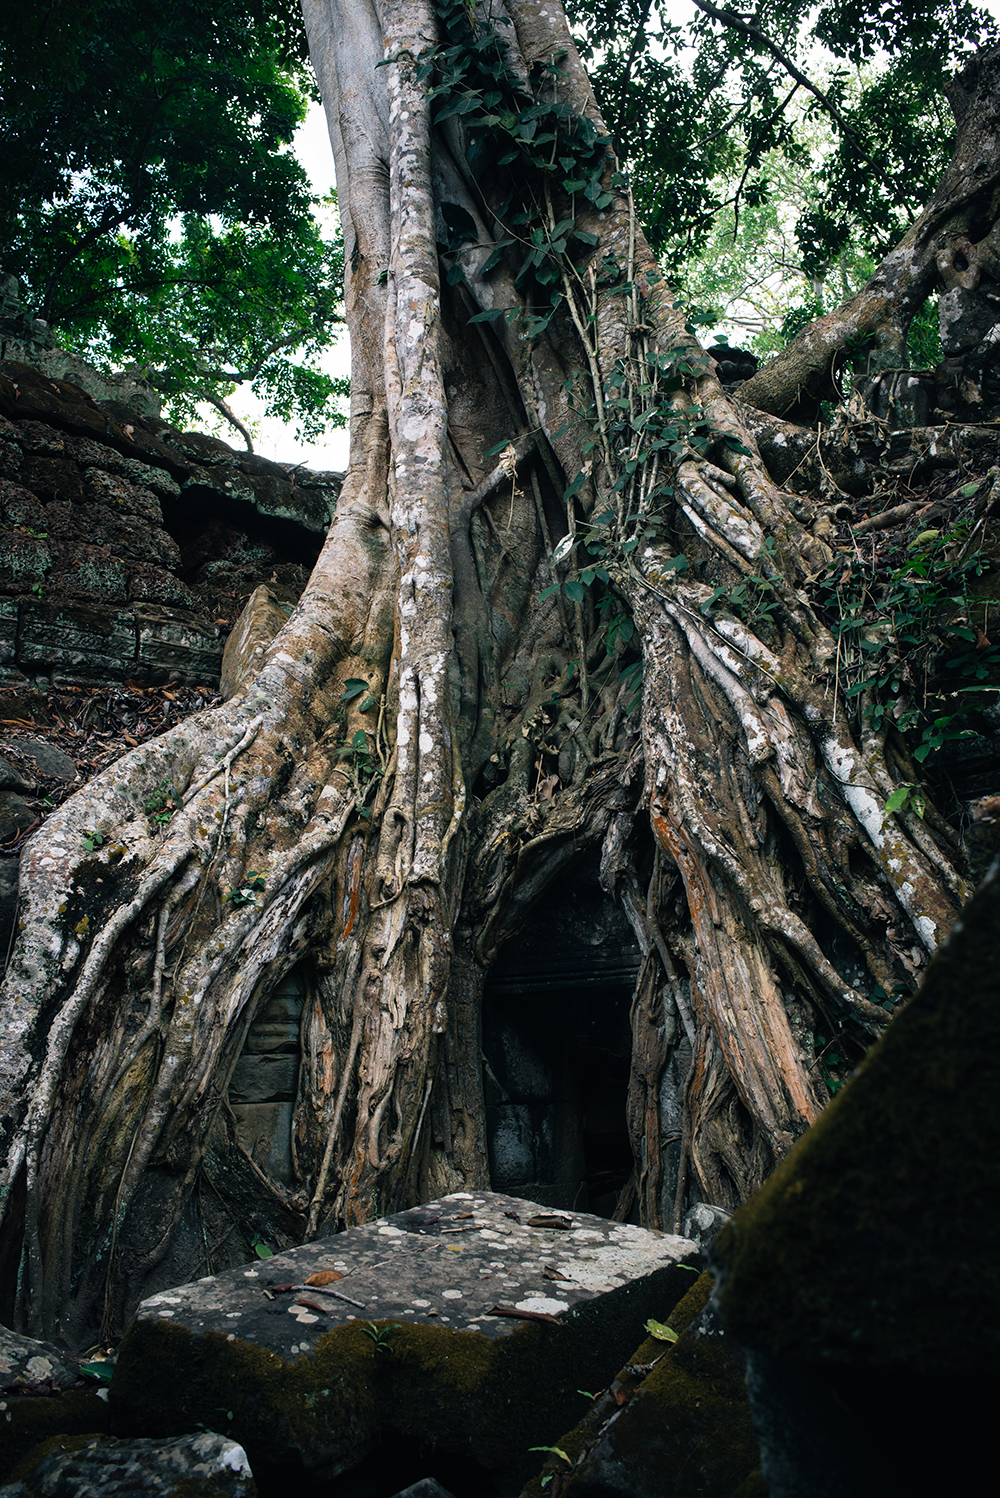 Ta Prohm temple Siem Reap Angkor Cambodia. Crumbling ruins with huge tree.